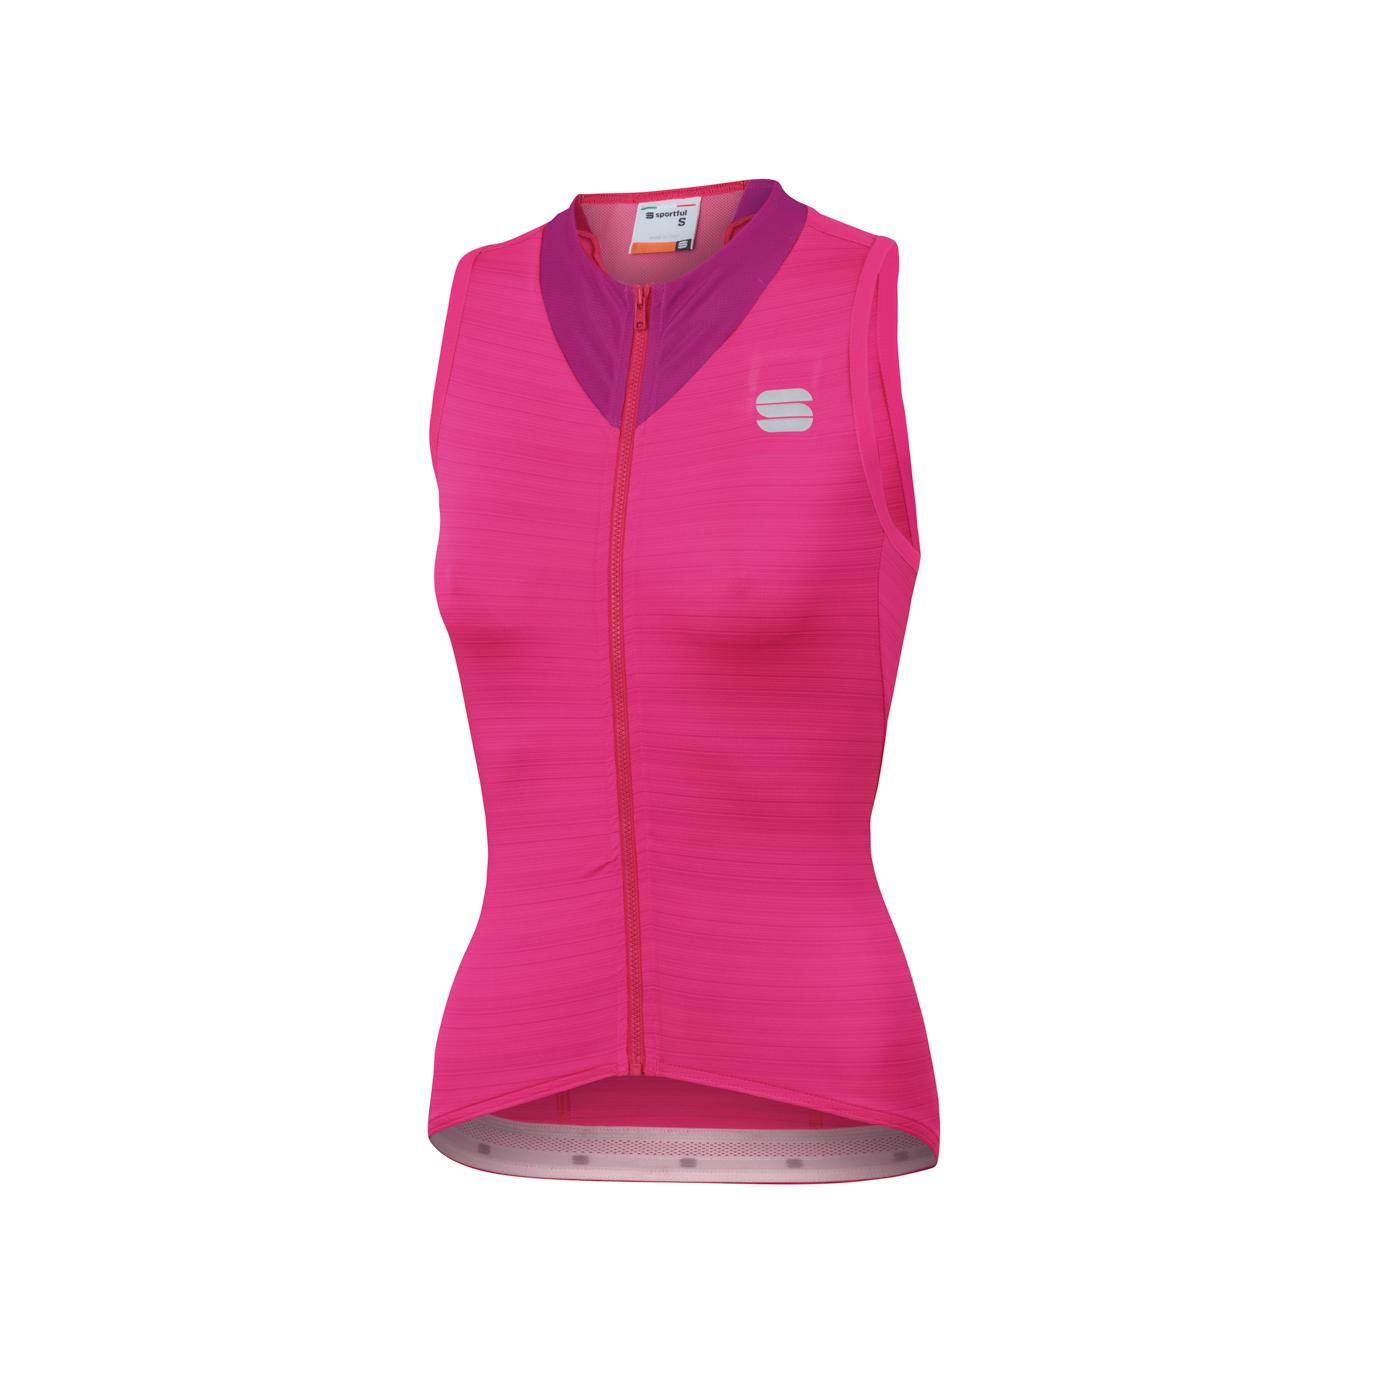 Sportful Fietsshirt Mouwloos voor Dames Roze - SF Kelly W Sleeveless Jersey-Bubble Gum